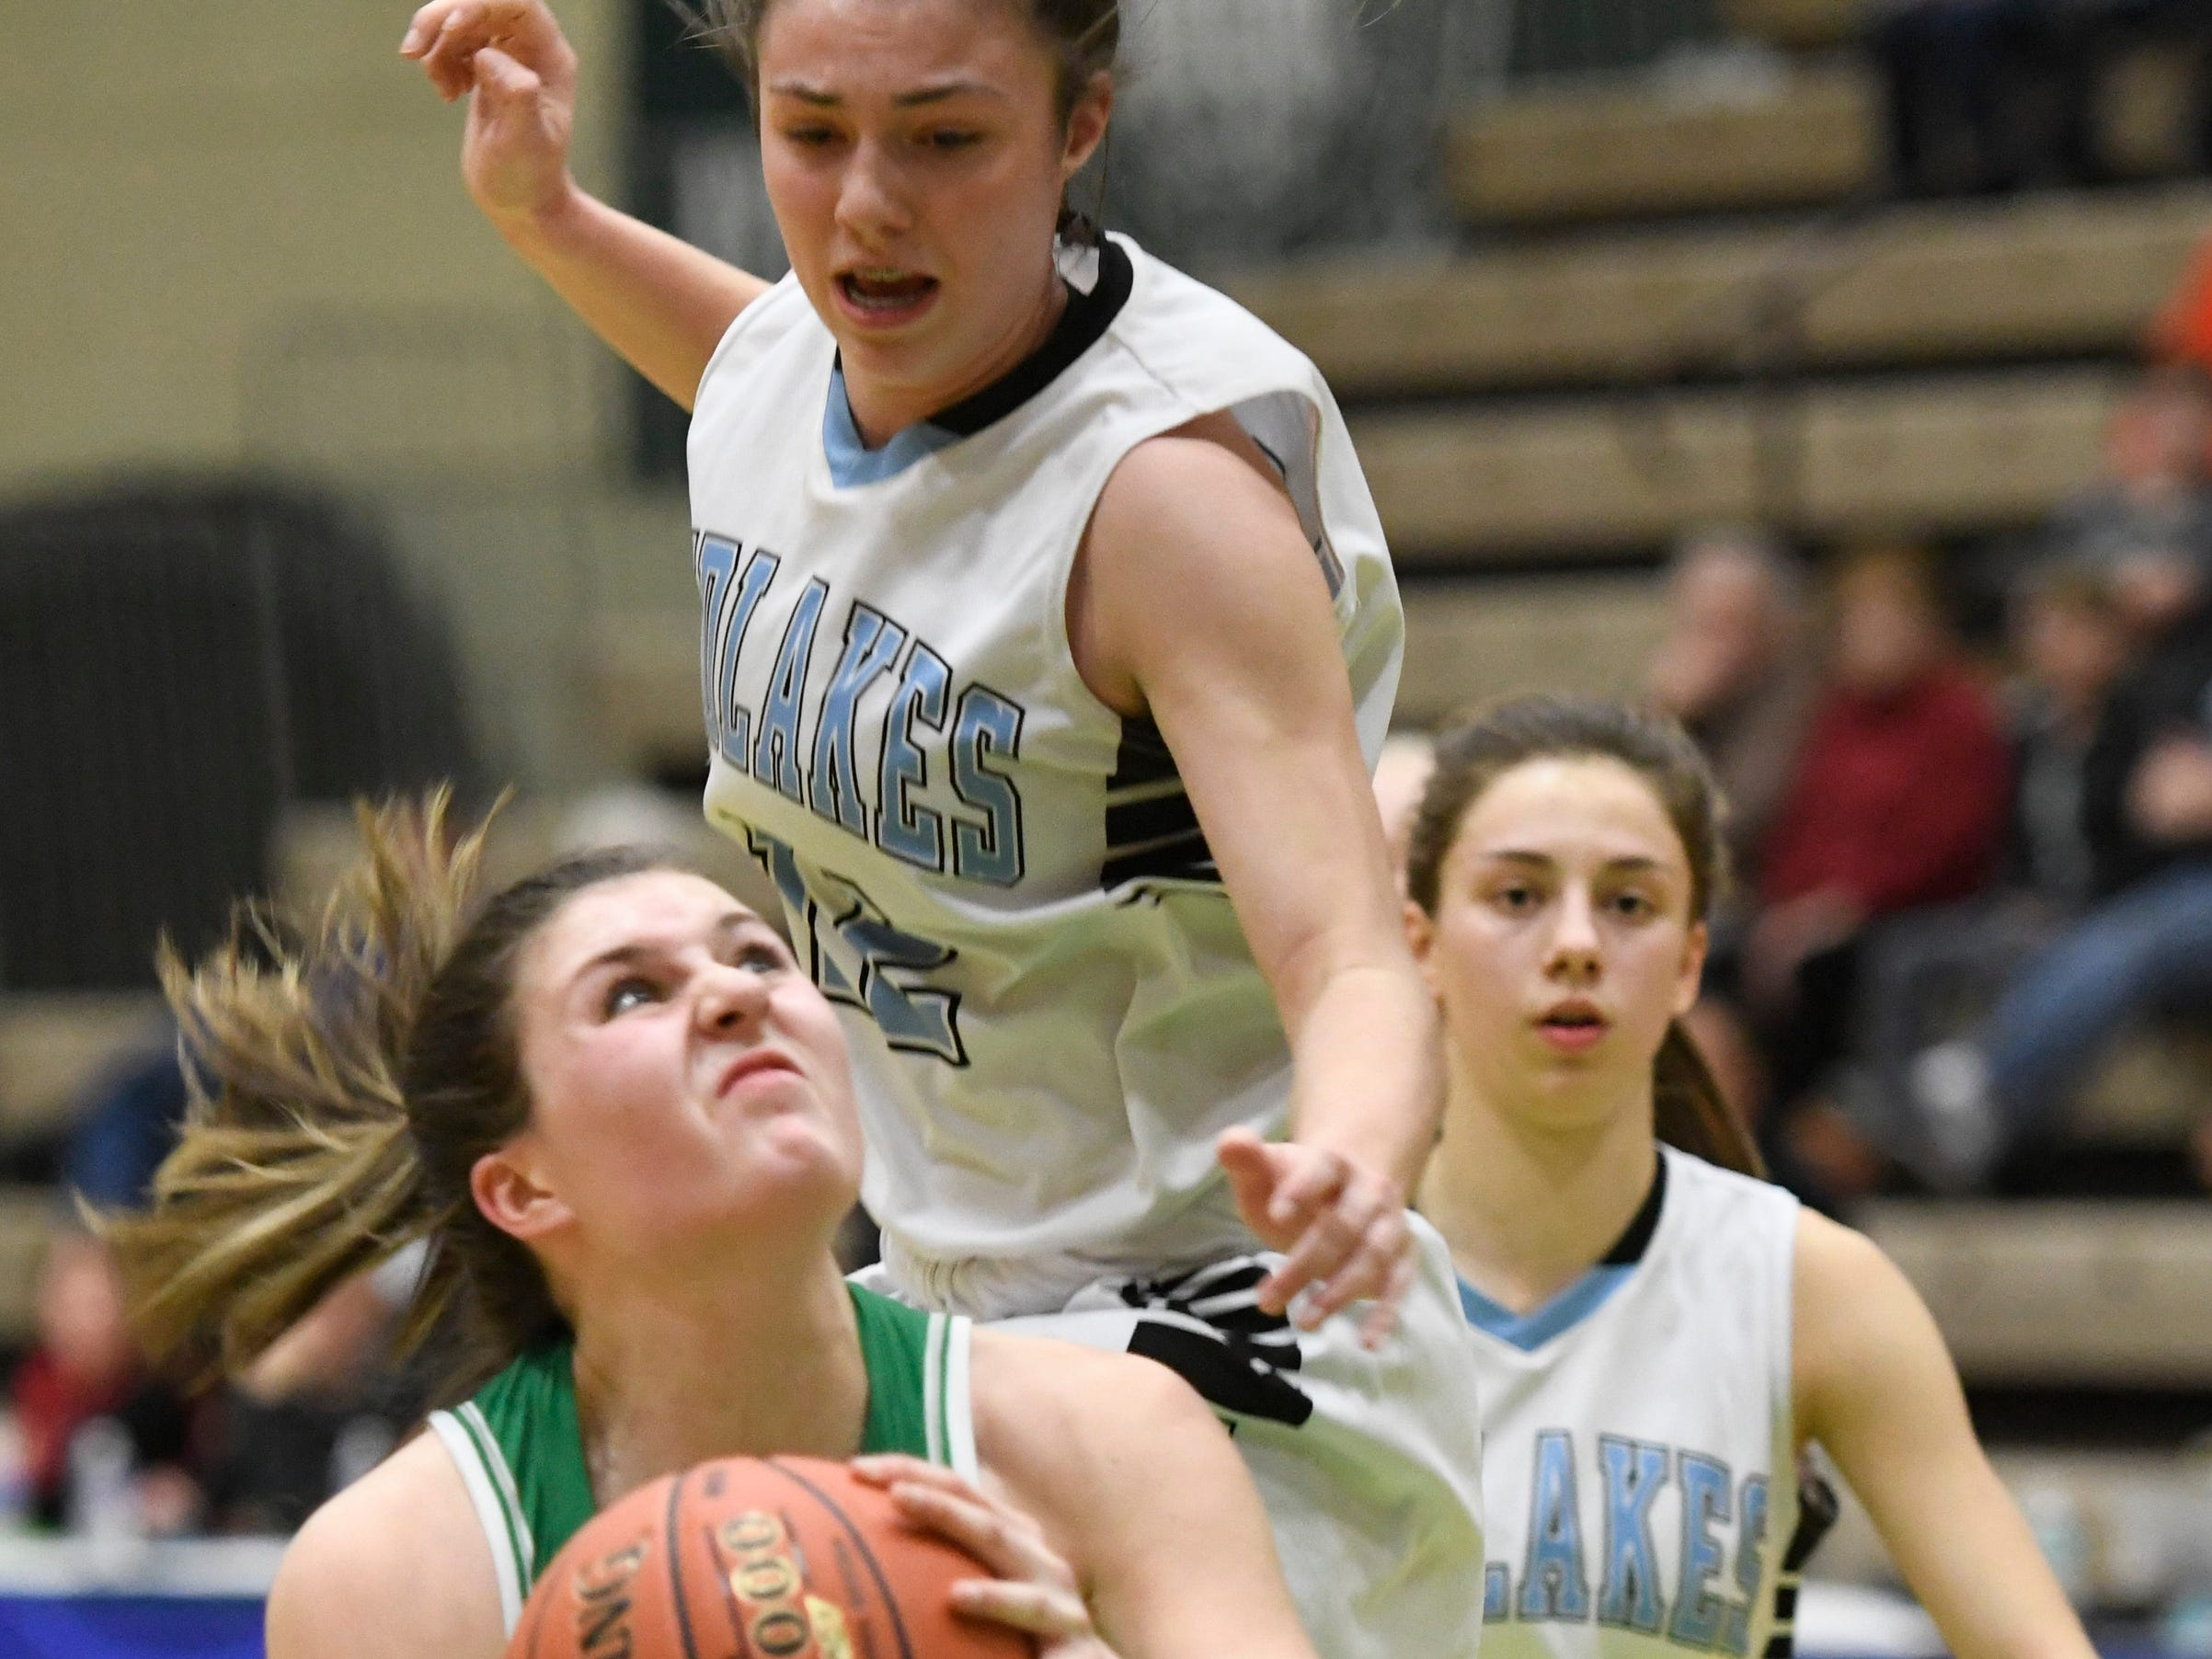 Midlakes' Alaina Forbes tries to block Irvington's Mia Mascone during the Class B State Championship at Hudson Valley Community College on March 16, 2019, in Troy, N.Y.